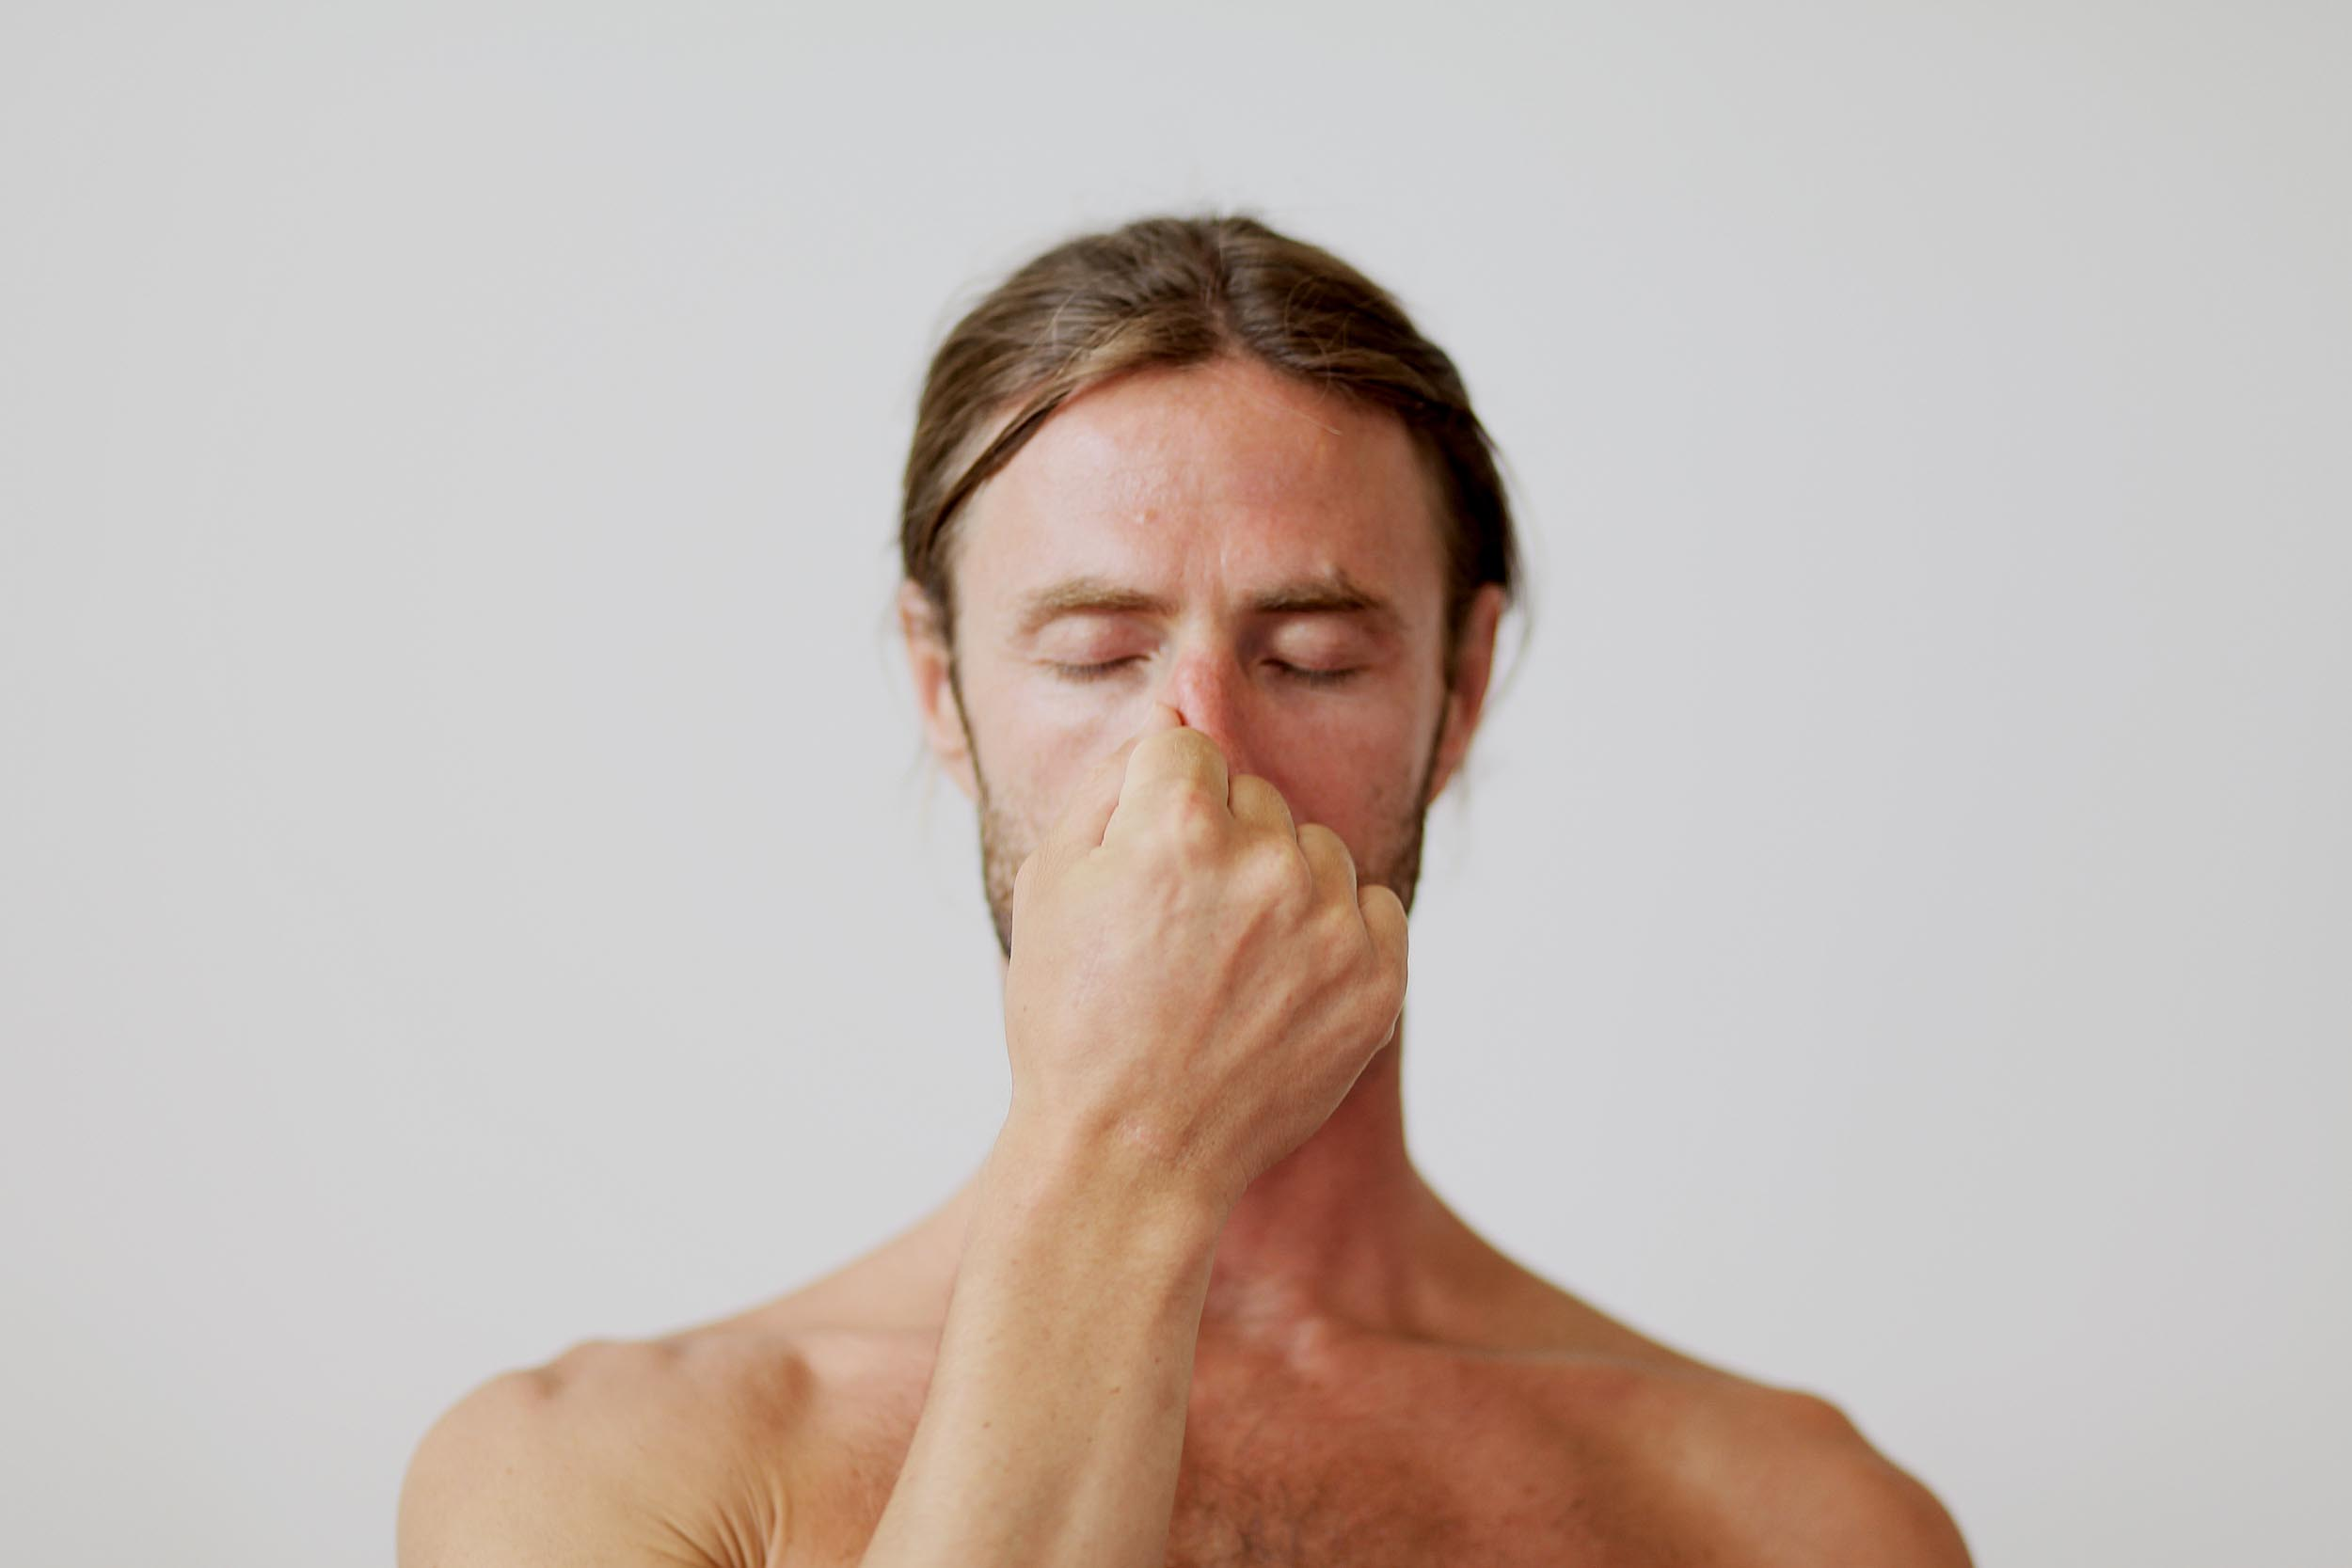 Pranayama the yogi's art of breathing - Guy Powiecki